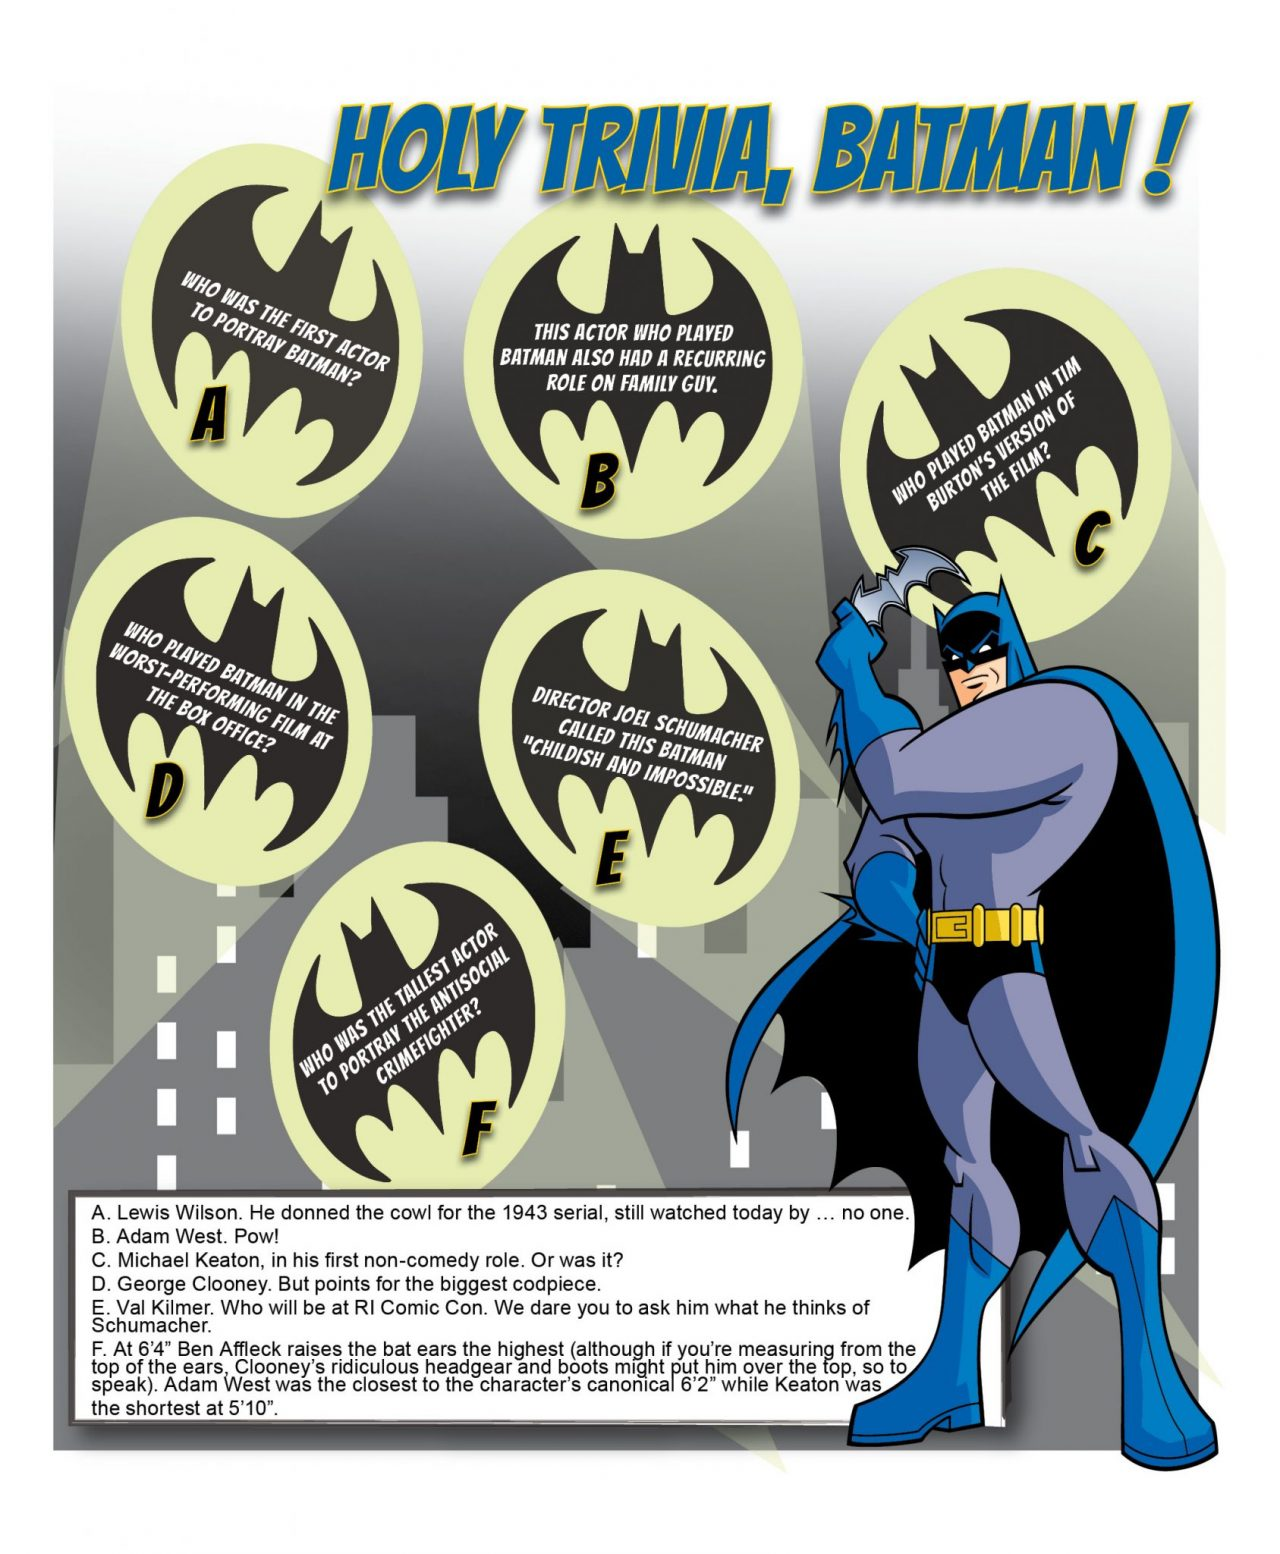 Batman trivia for web